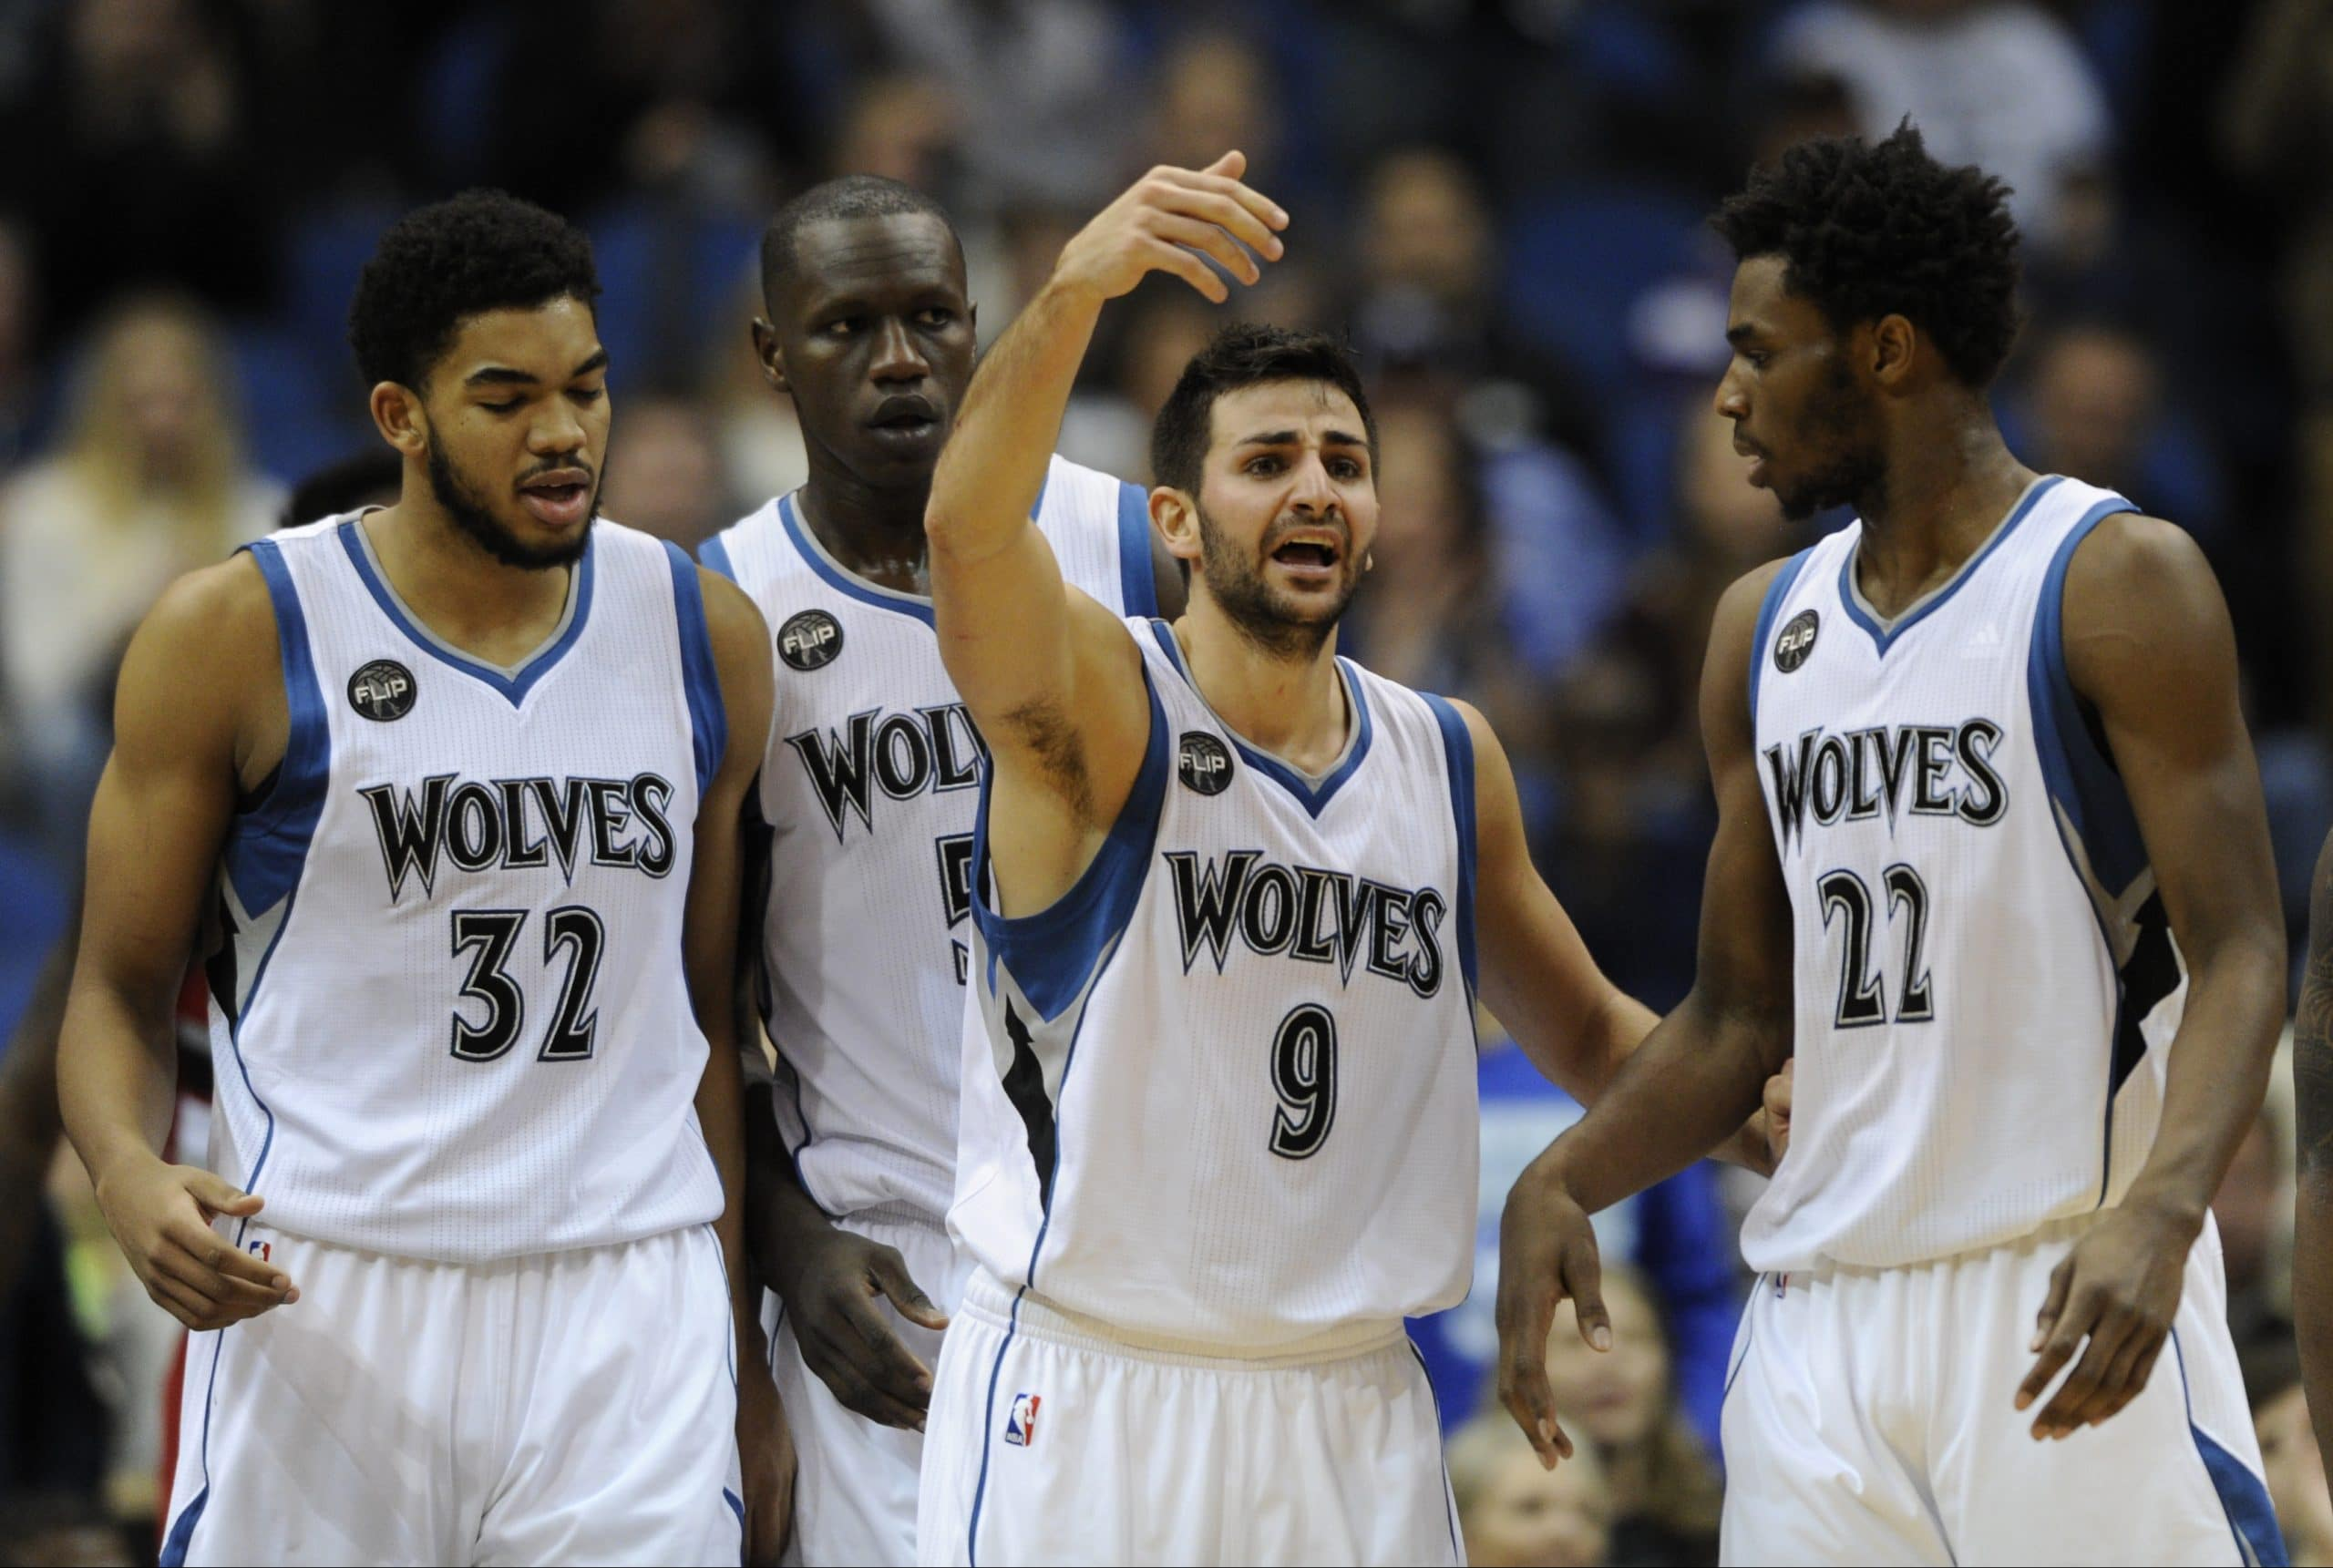 Minnesota Timberwolves center Karl-Anthony Towns (32), left, center Gorgui Dieng (5), of Senegal, guard Ricky Rubio (9), of Spain, and guard Andrew Wiggins (22) huddle up during the fourth quarter of an NBA basketball game against the Portland Trail Blazers on Saturday, Dec. 5, 2015, in Minneapolis. The Trail Blazers won 109-103. (AP Photo/Hannah Foslien)